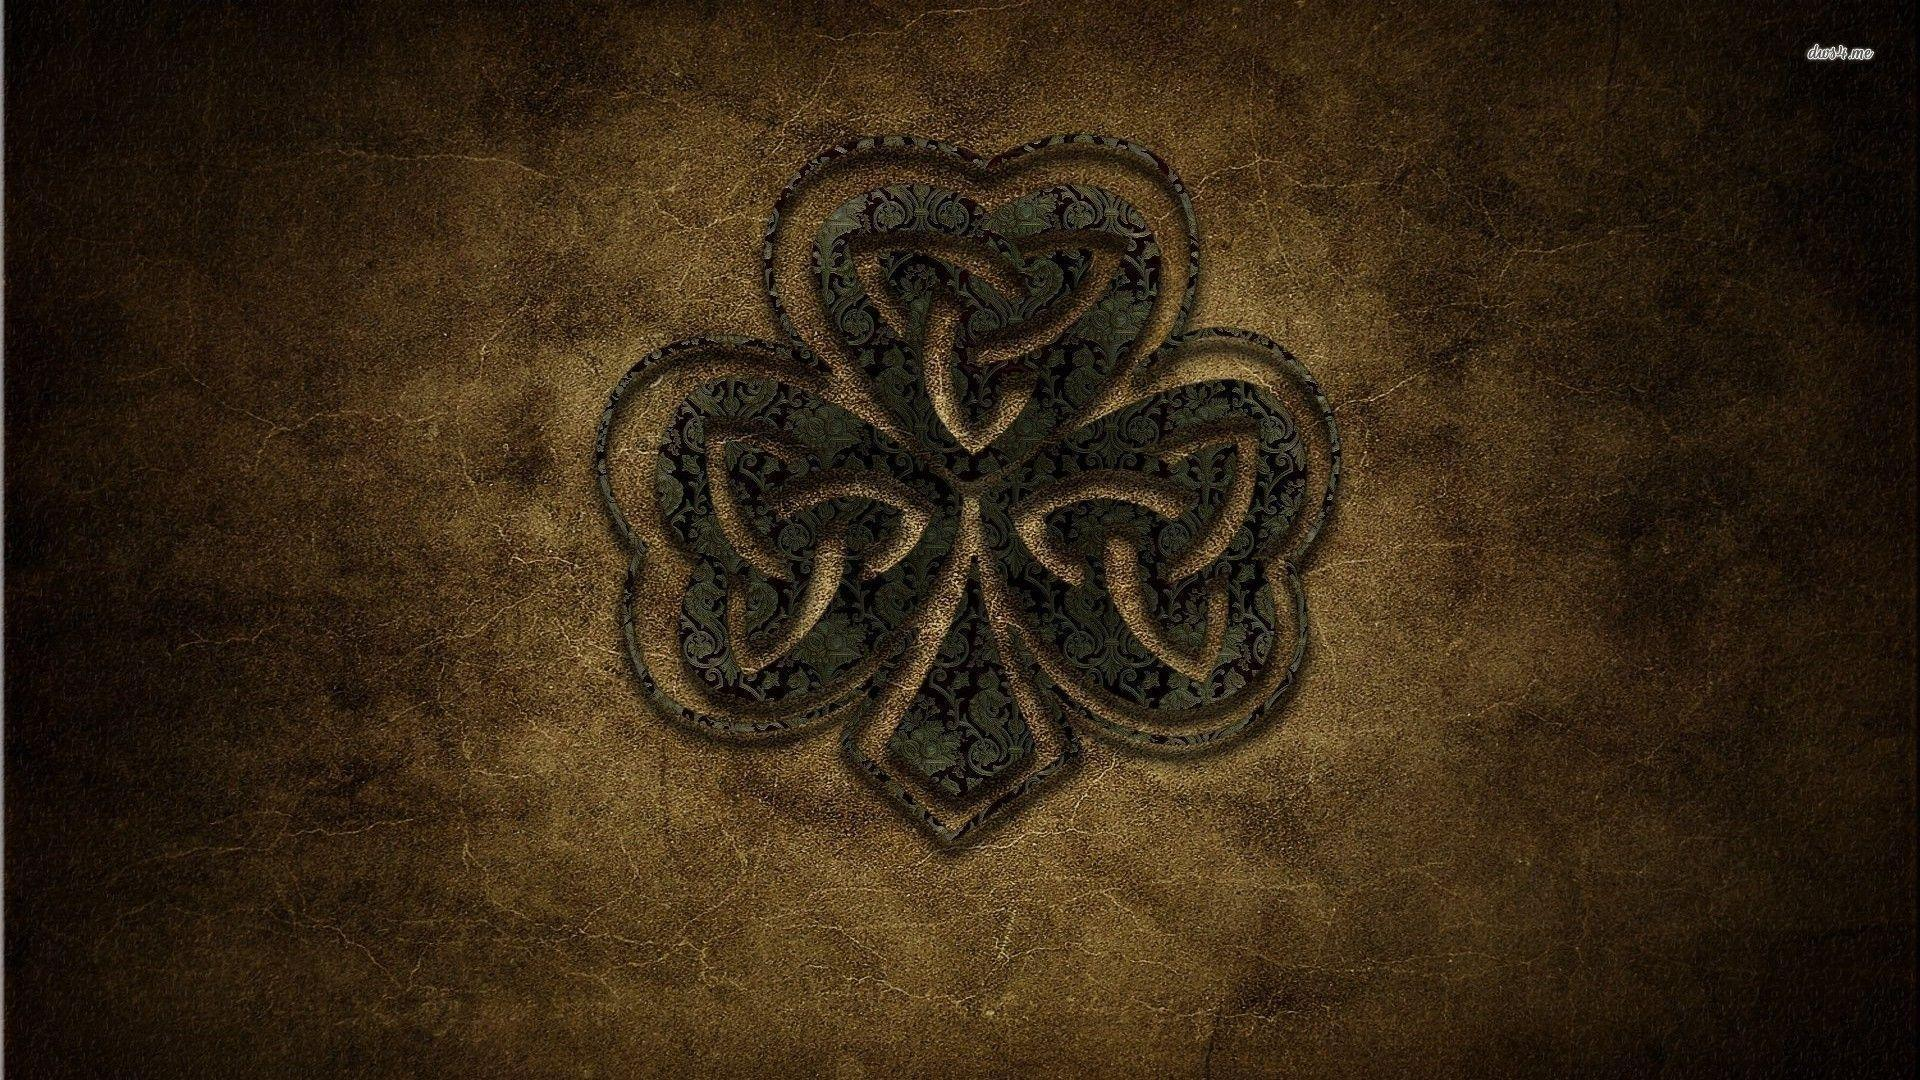 Shamrock wallpapers